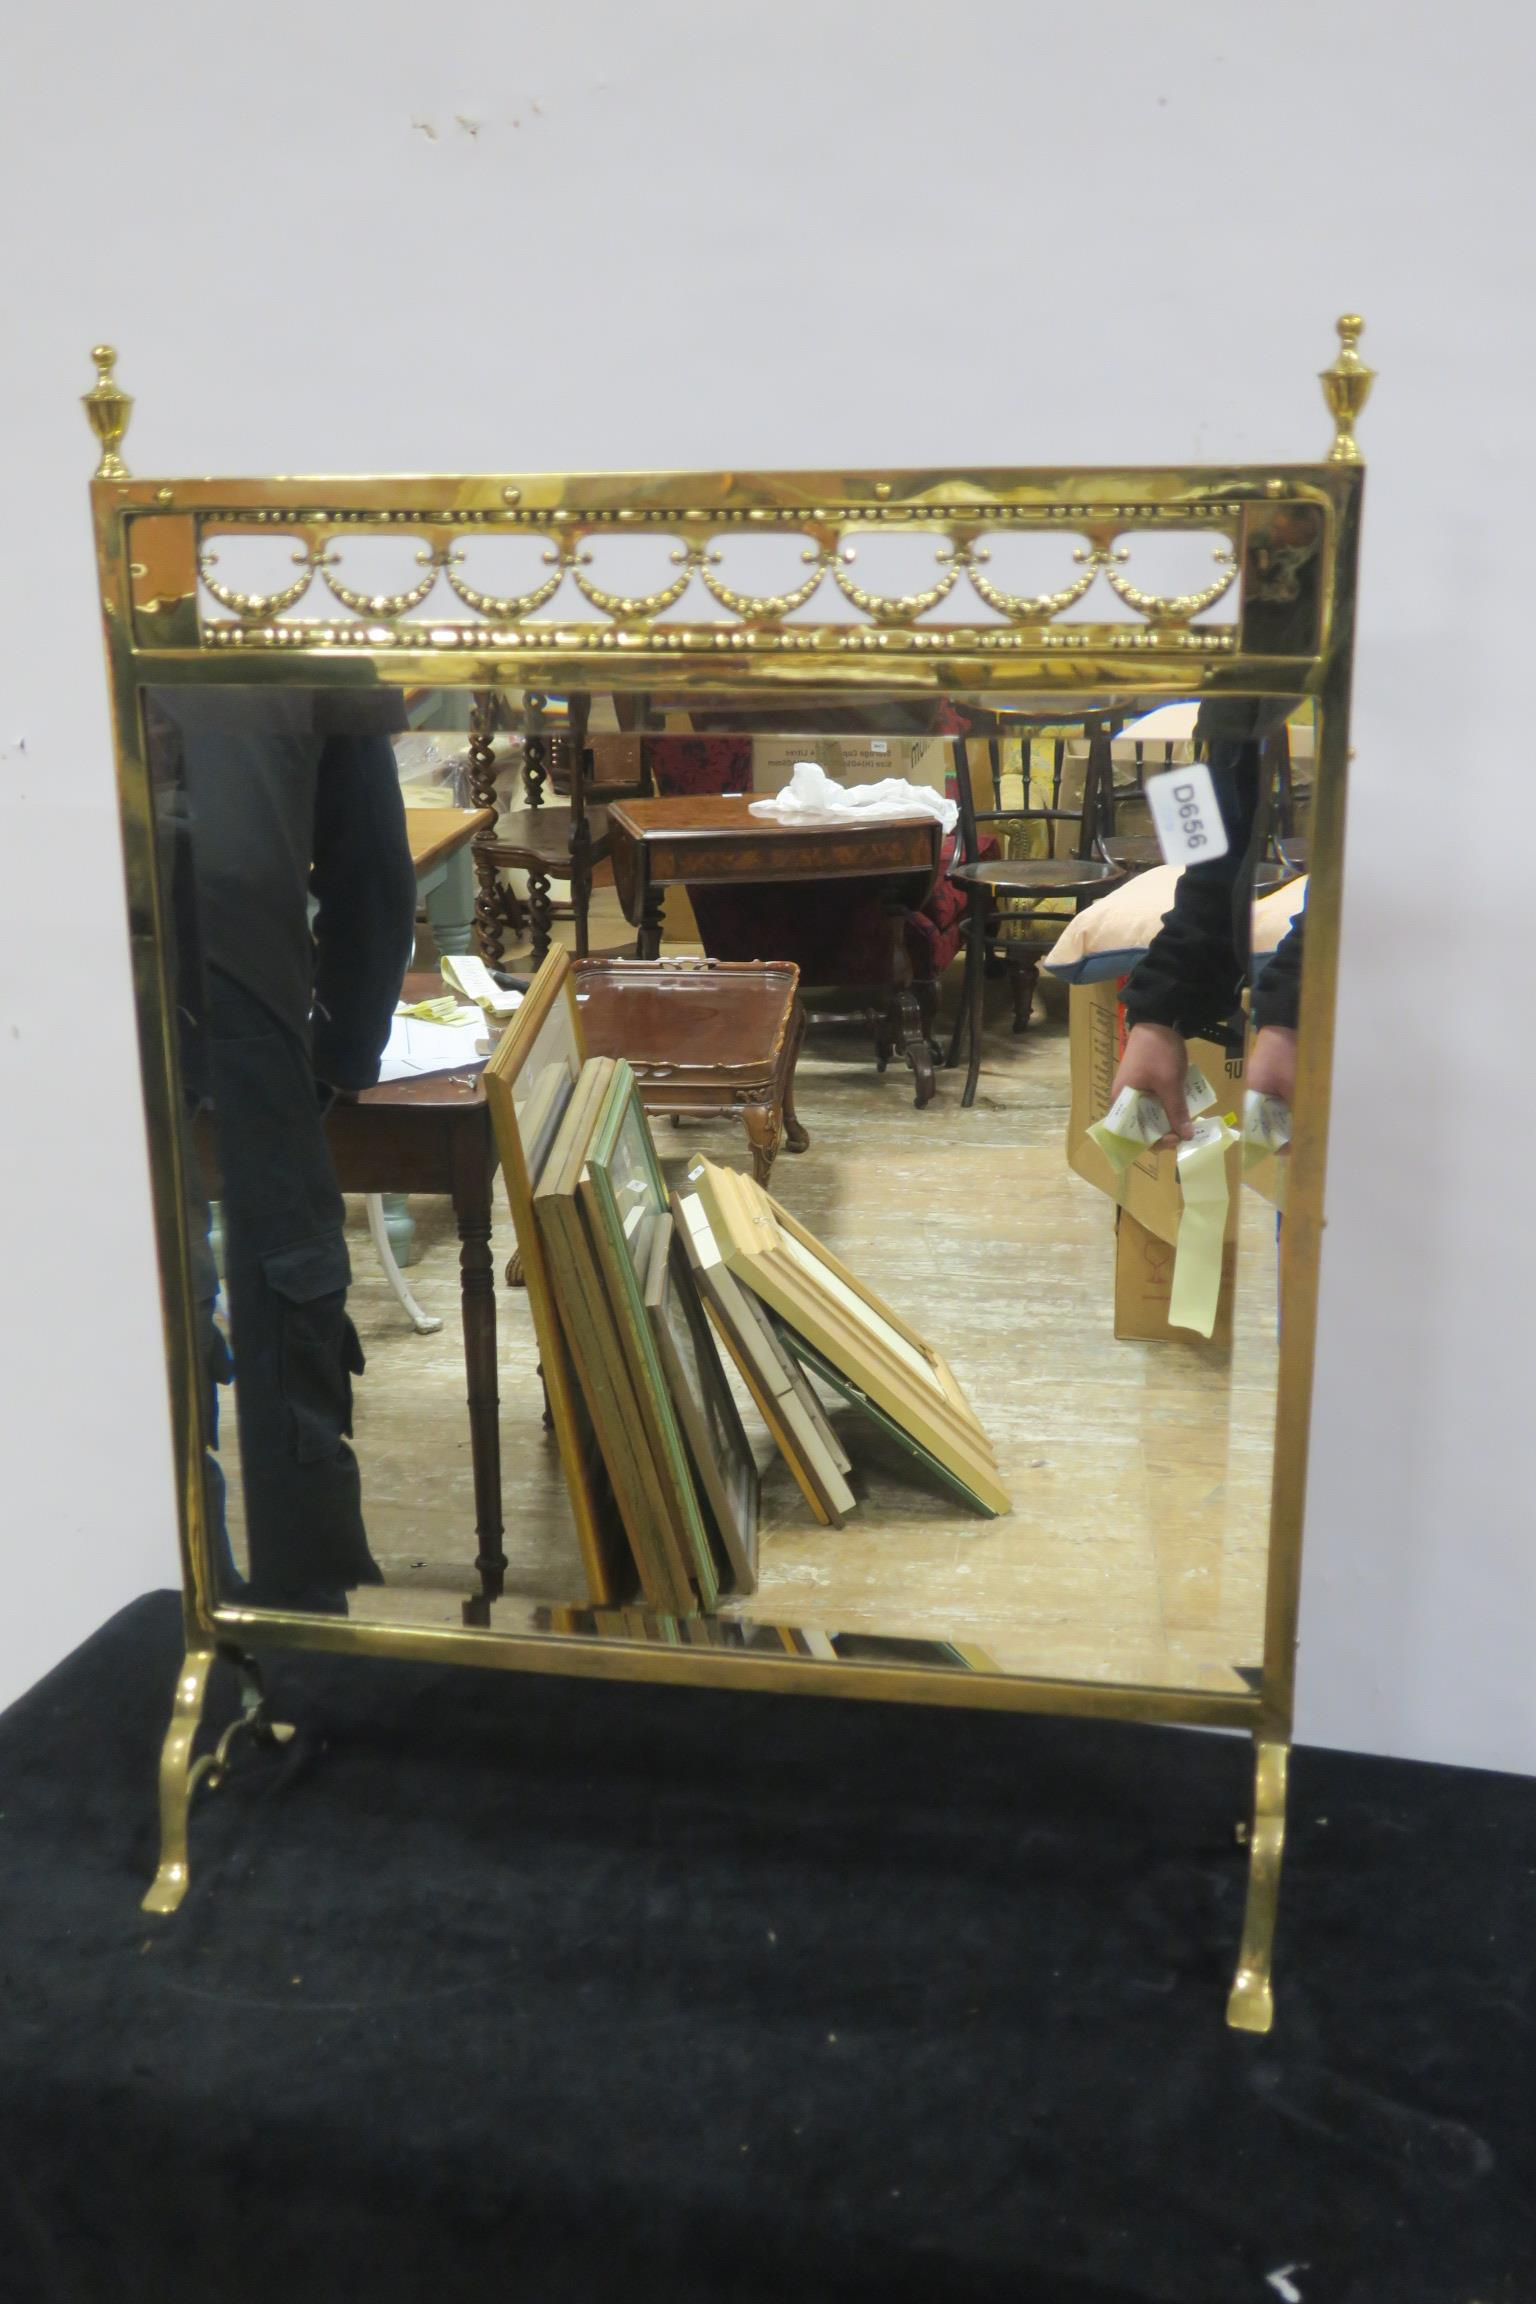 Lot 441 - A 19TH CENTURY BRASS MIRRORED FIRE SCREEN the rectangular bevelled glass plate within a moulded